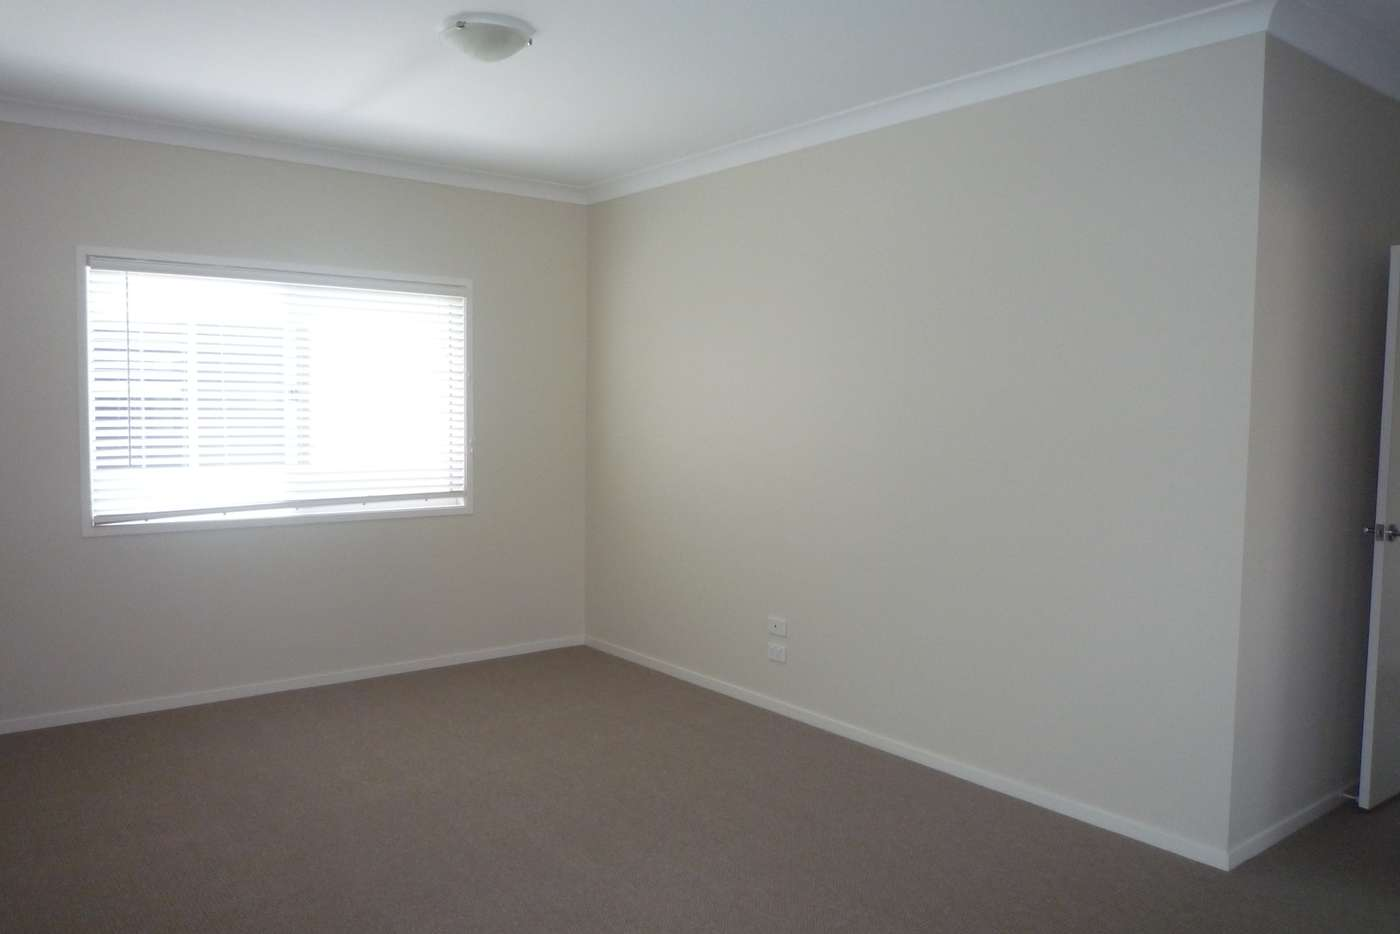 Sixth view of Homely house listing, 15 Wighton Street, Sandgate QLD 4017